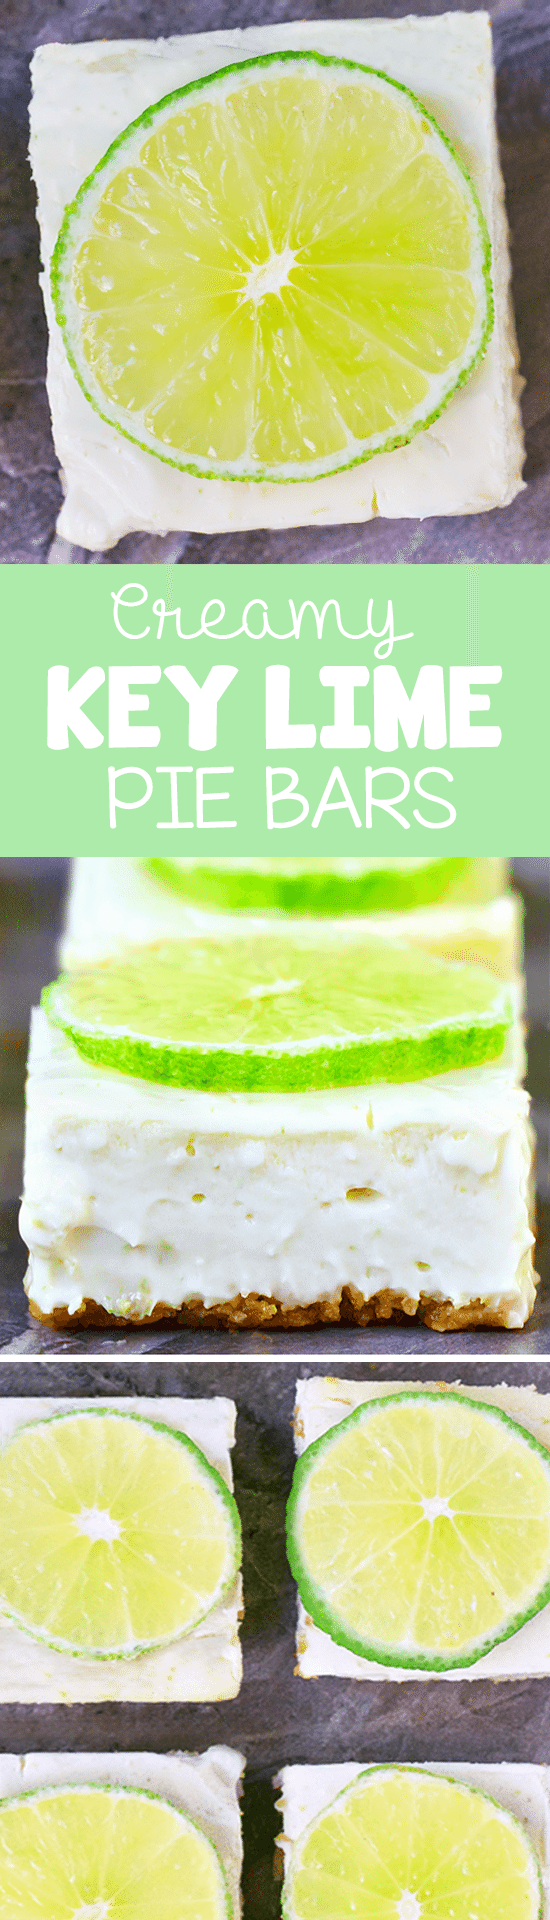 The best part about these creamy key lime pie bars is how deliciously light & creamy they are!